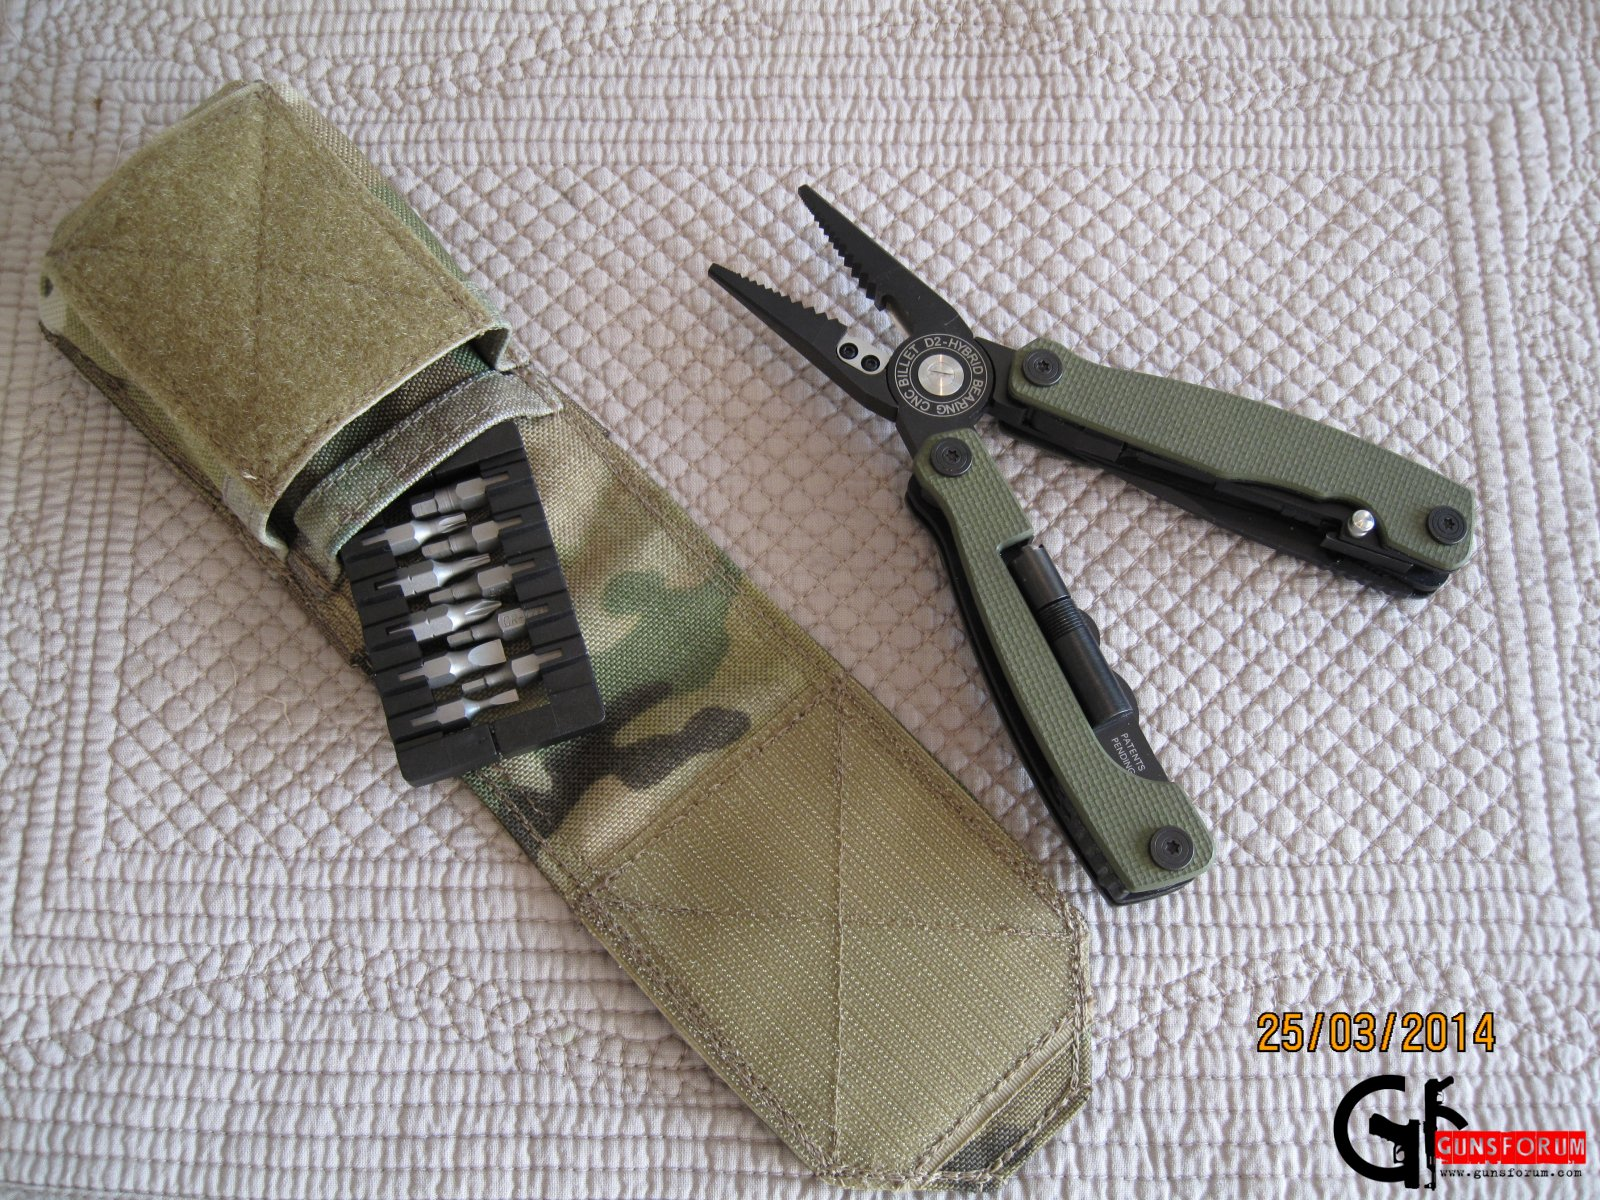 Подсумок EGL MT3 pouch для мультитула Multitasker series 3 multitool от Extreme Gear Labs